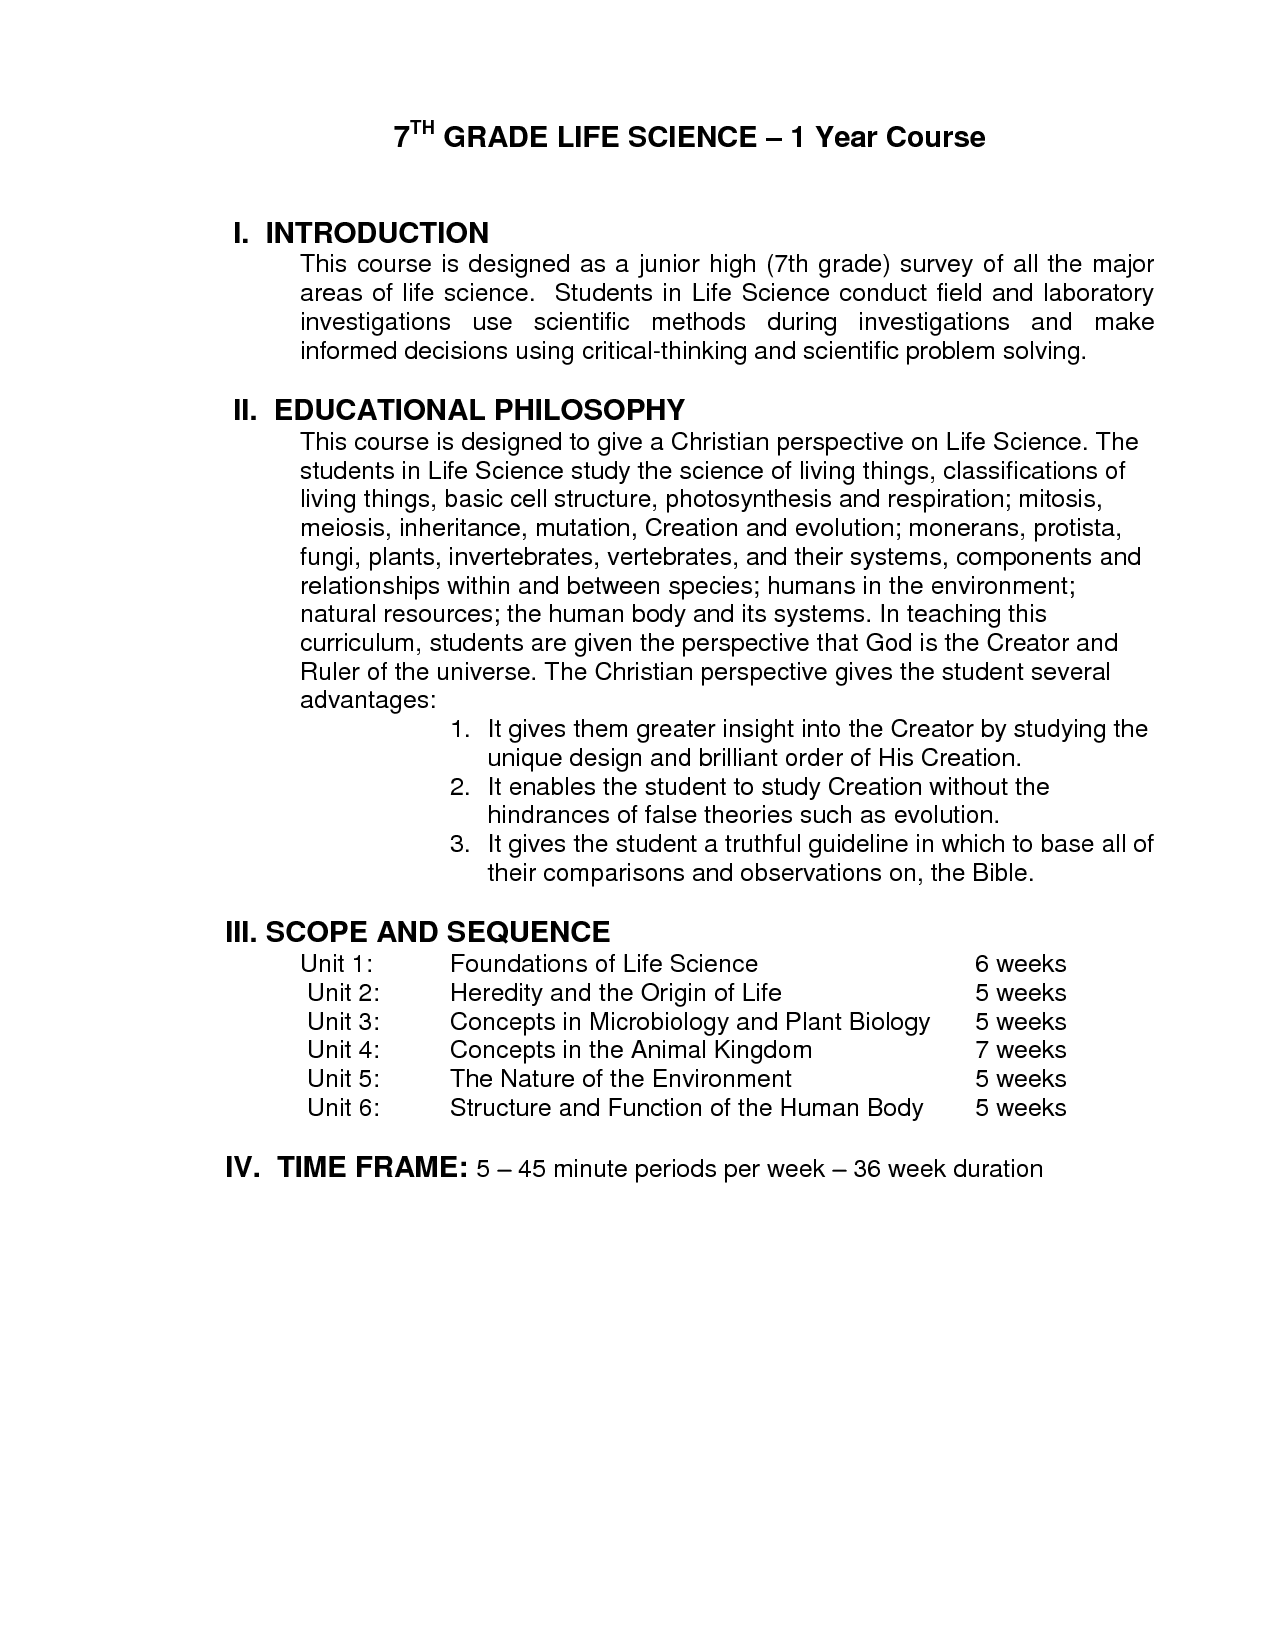 Critical Thinking Worksheet For Adults